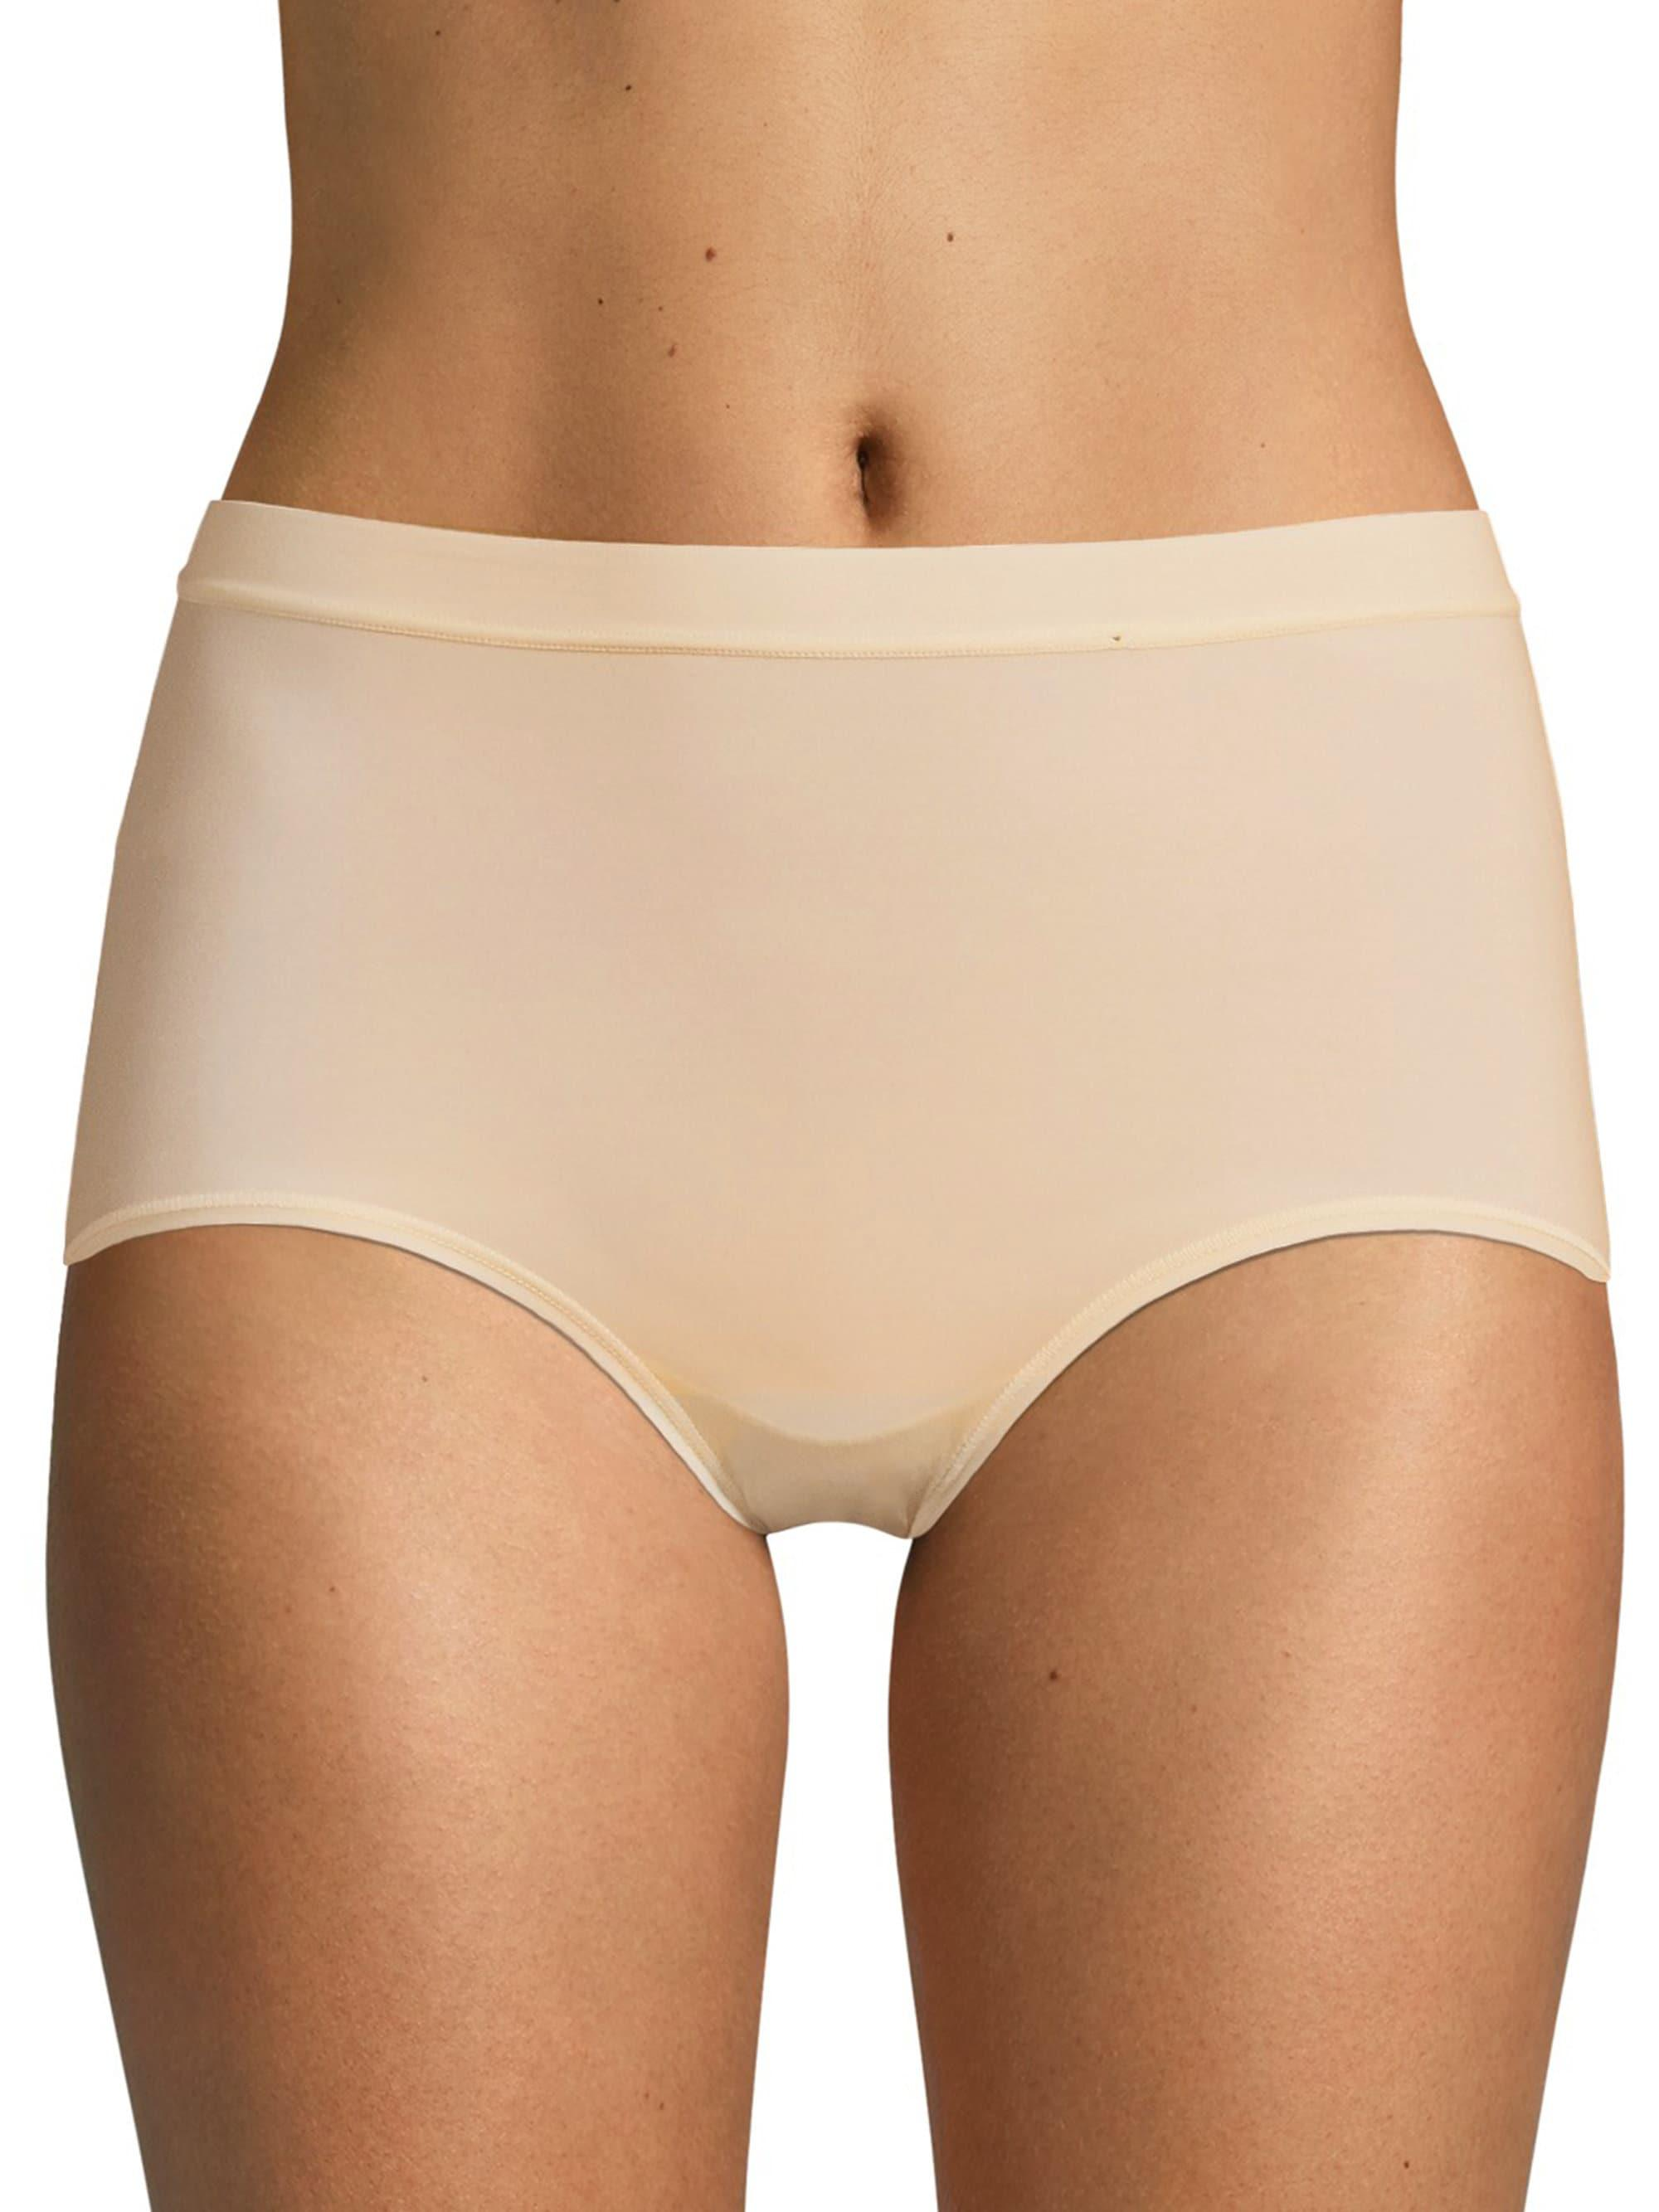 ad6b15d38d Lyst - Wacoal Flawless Comfort Briefs in Natural